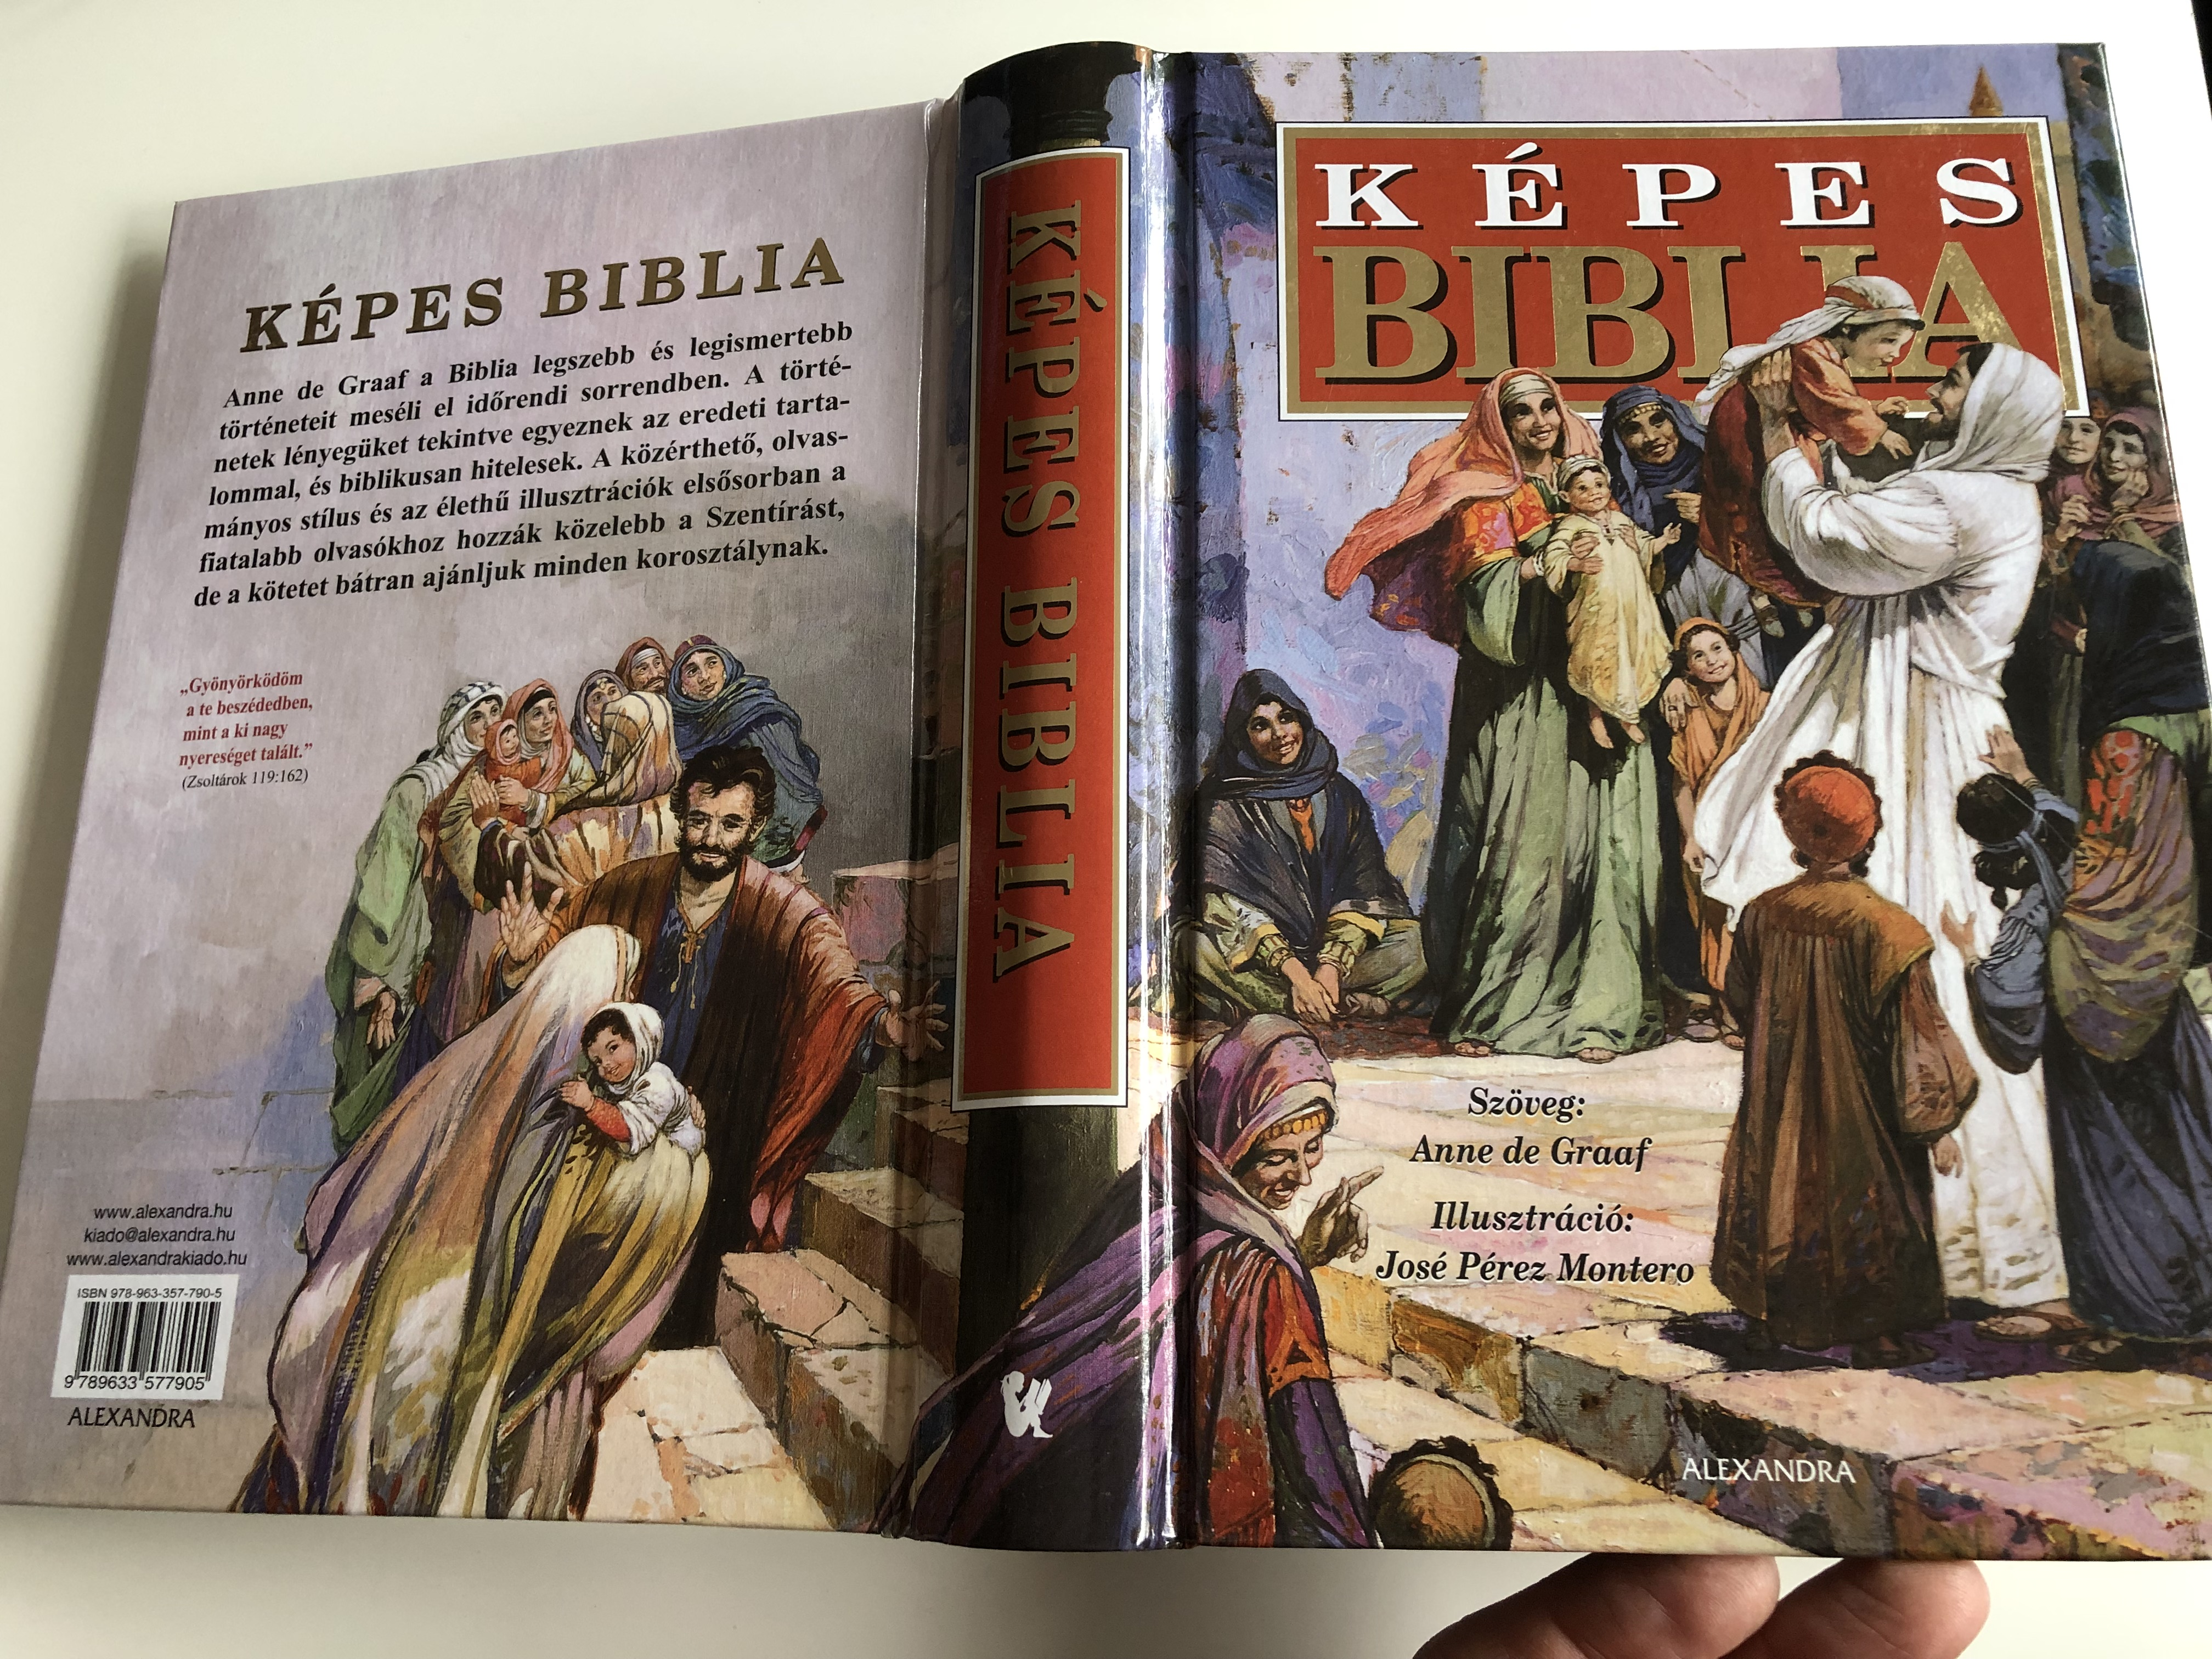 k-pes-biblia-hungarian-edition-of-the-children-s-bible-retord-by-anne-de-graaf-13.jpg